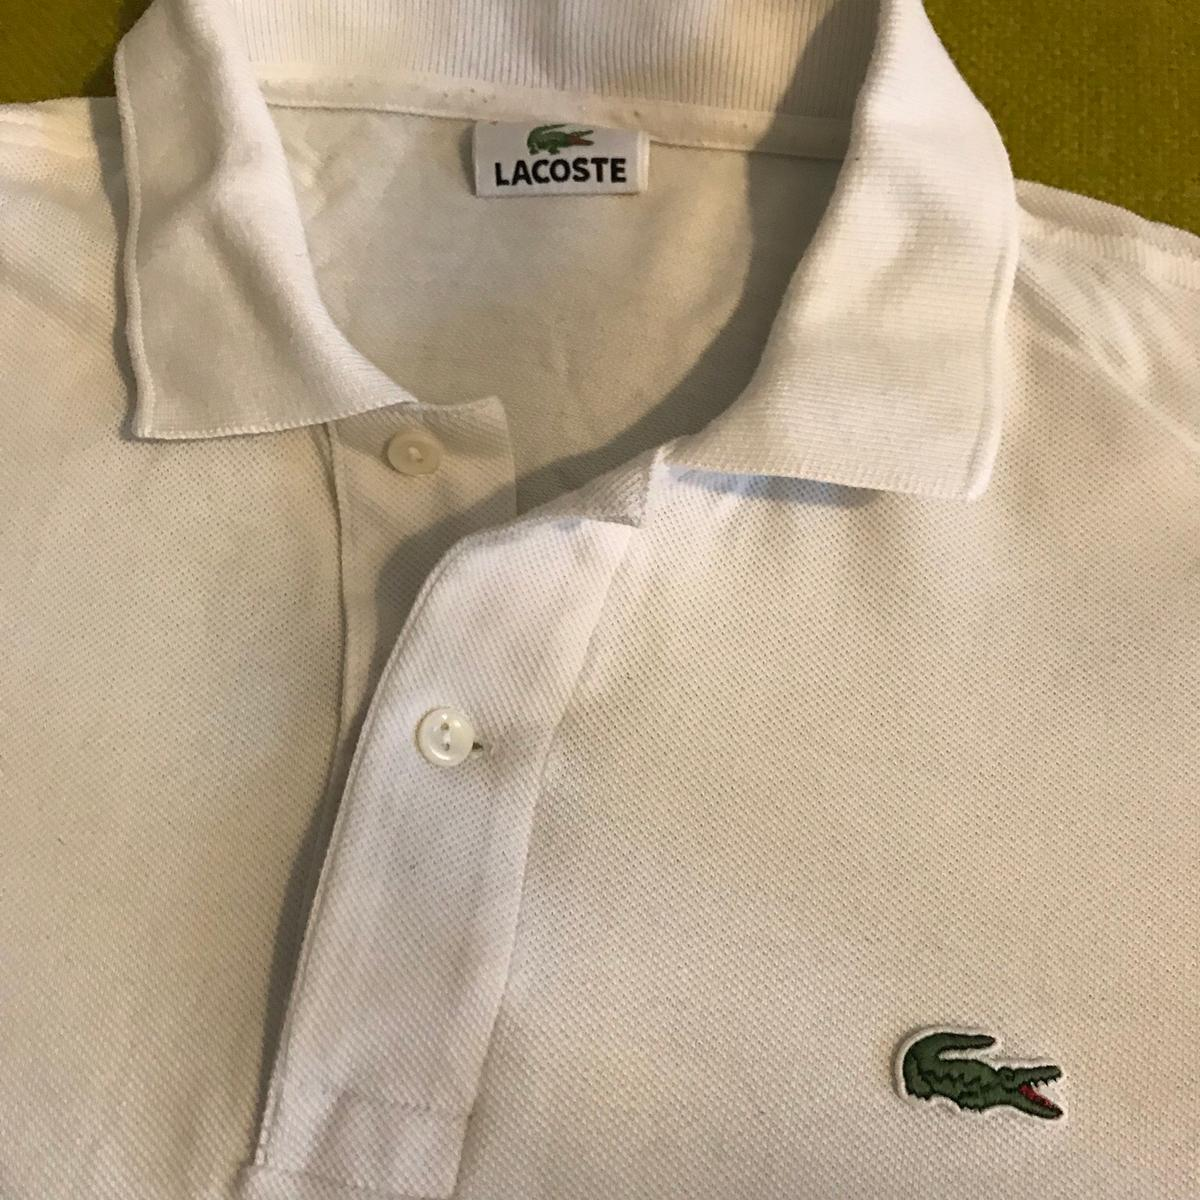 check out 6a2b8 3ce74 Original Lacoste Polo Shirt Weiß Größe 4 / M in 10437 ...